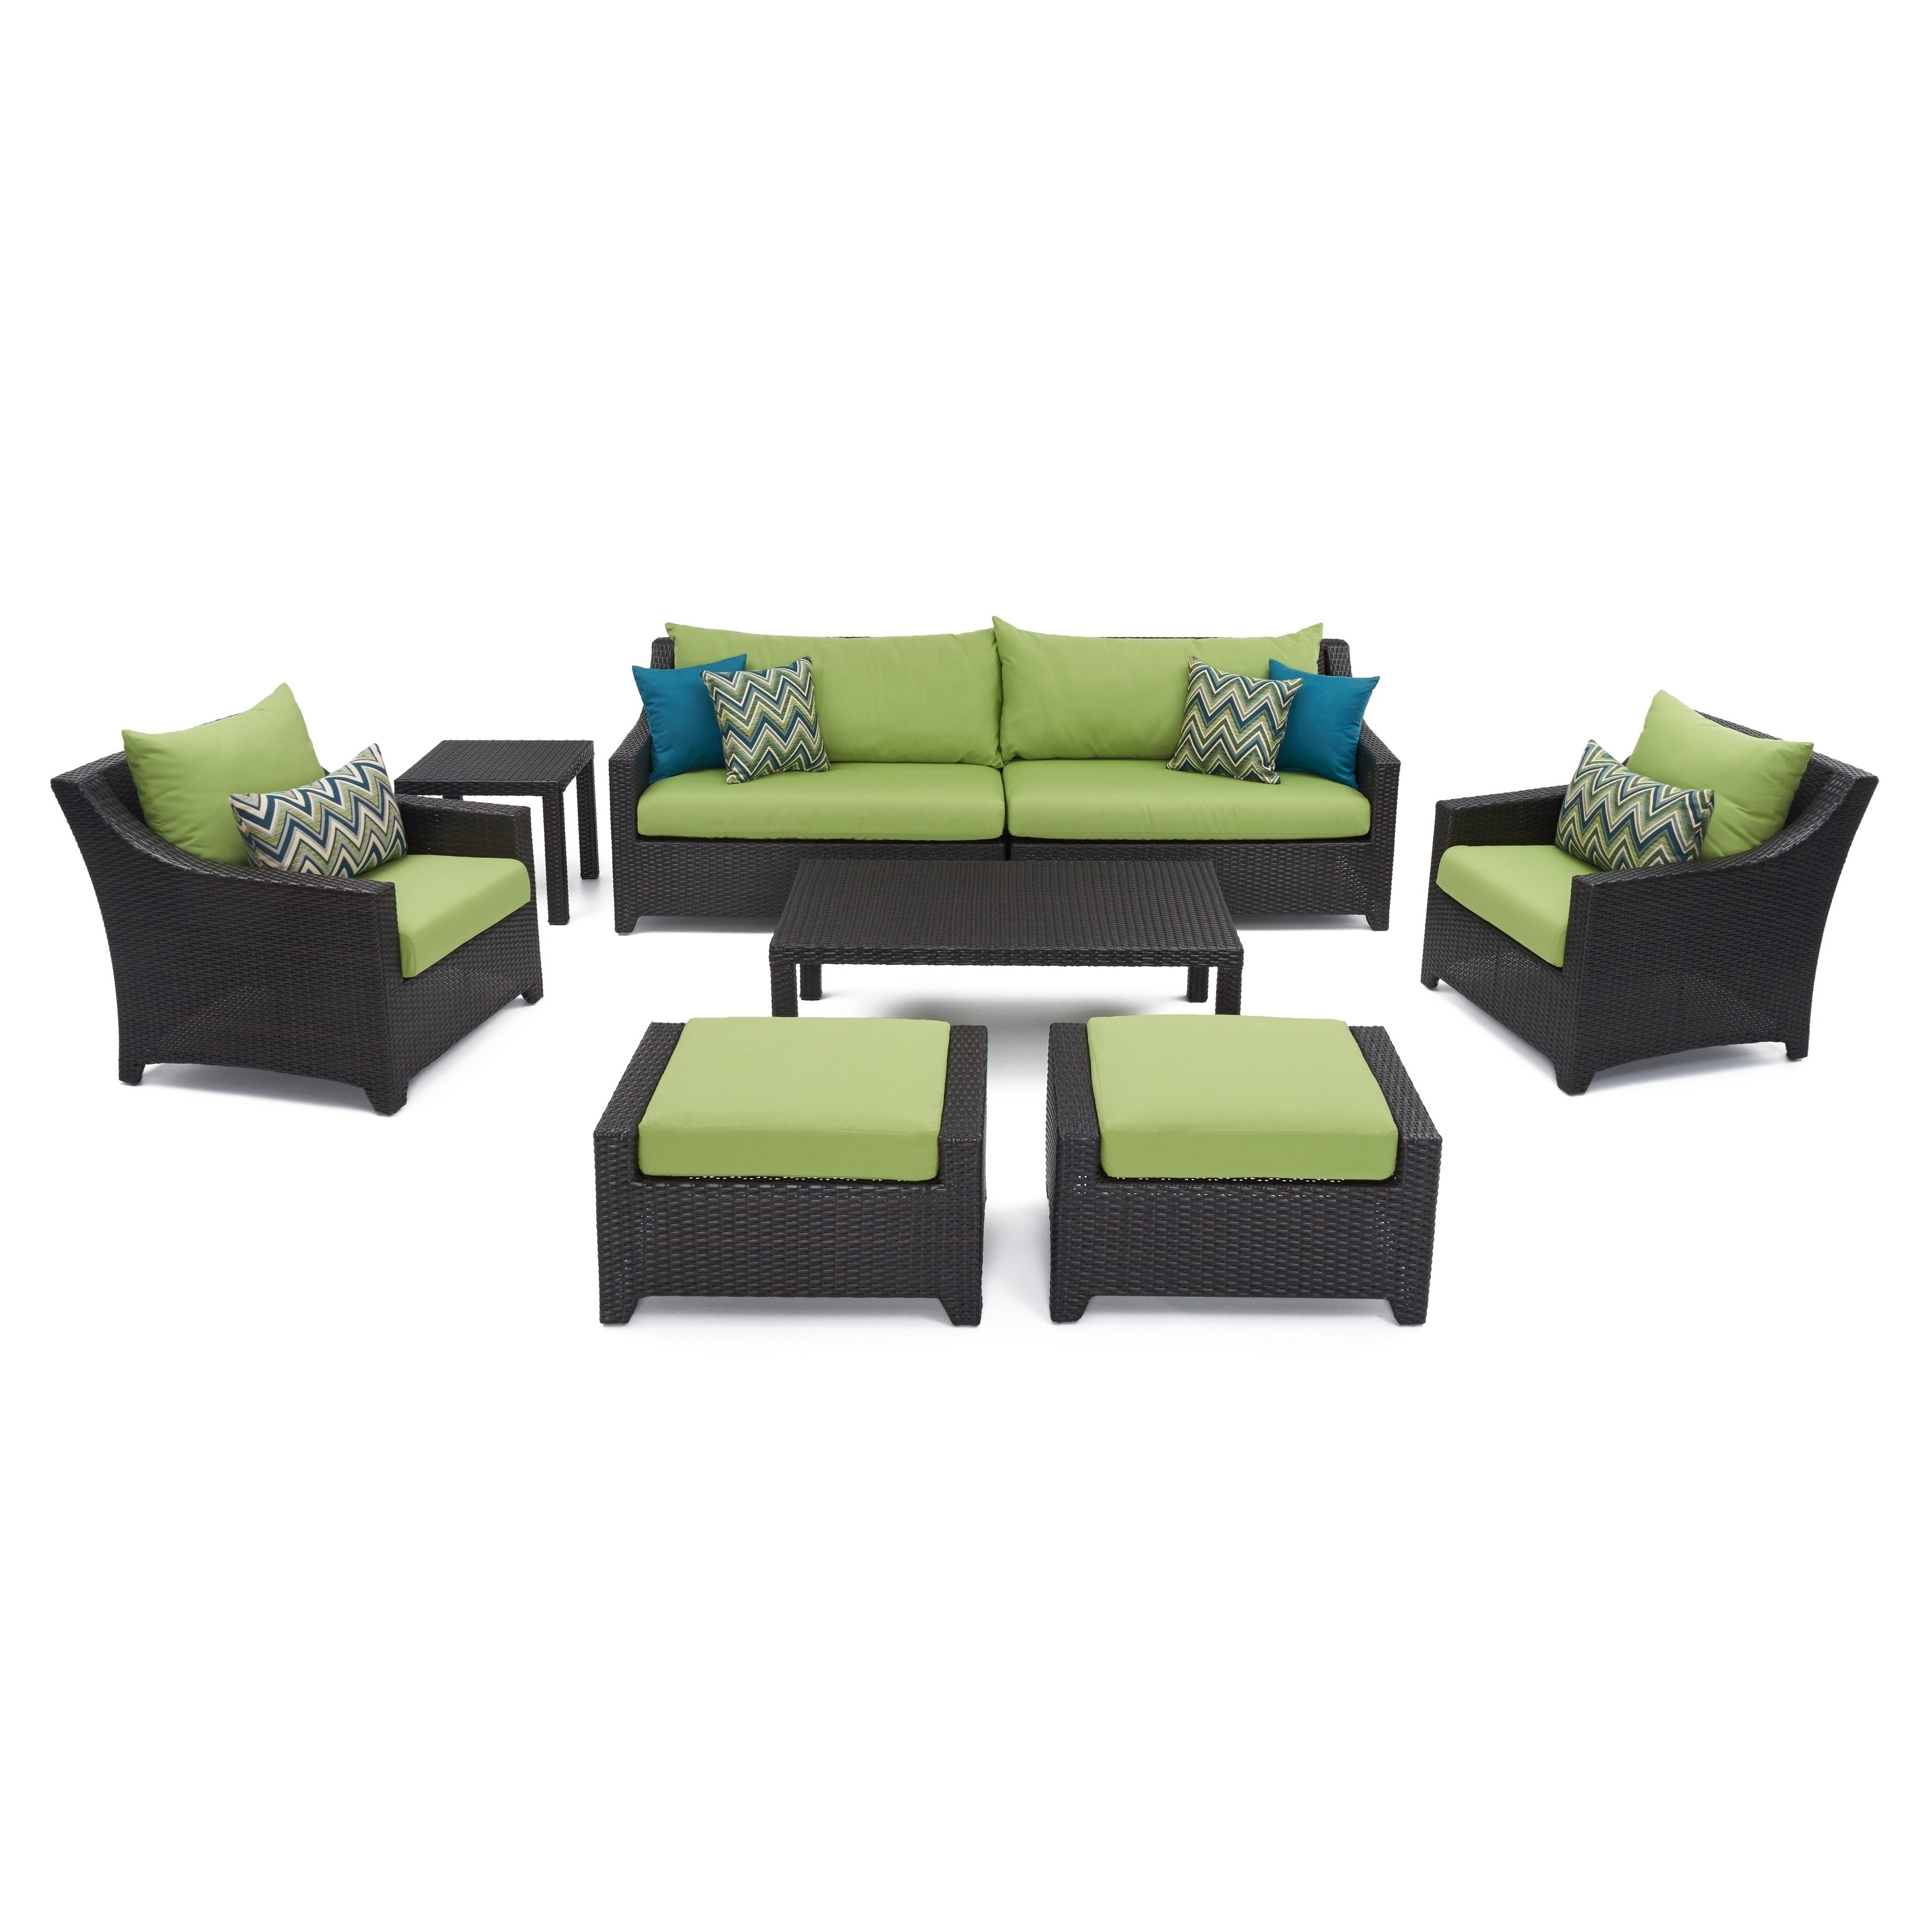 Rst brands deco 8 piece sofa and club chair deep seating set with gingko green cushions